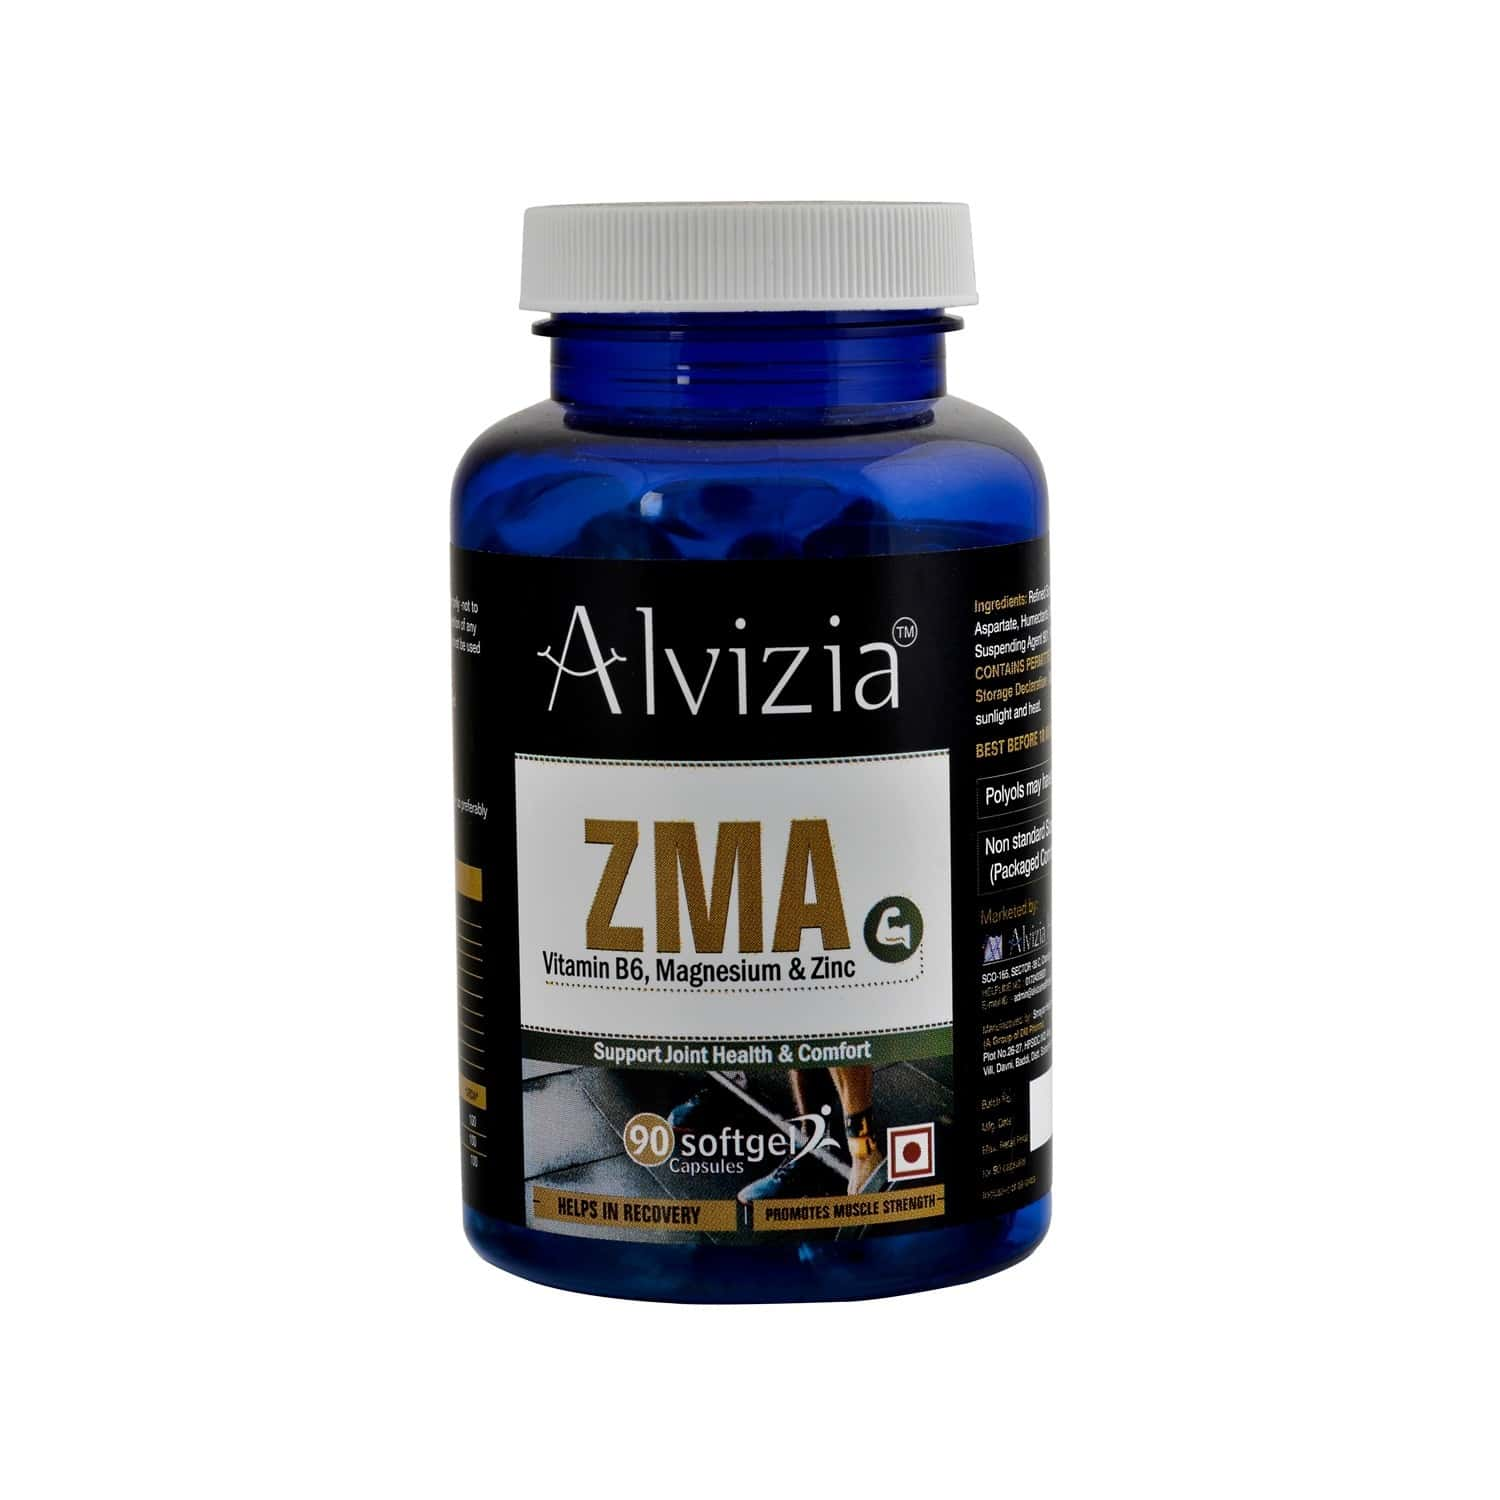 Alvizia Zma Supplements For Men With Zinc Magnesium & Vitamin B6 Supplement ( Immunity Booster, Muscular Strength & Power, Improves Testosterone Levels, Builds Metabolism) - 90 Softgel Capsules